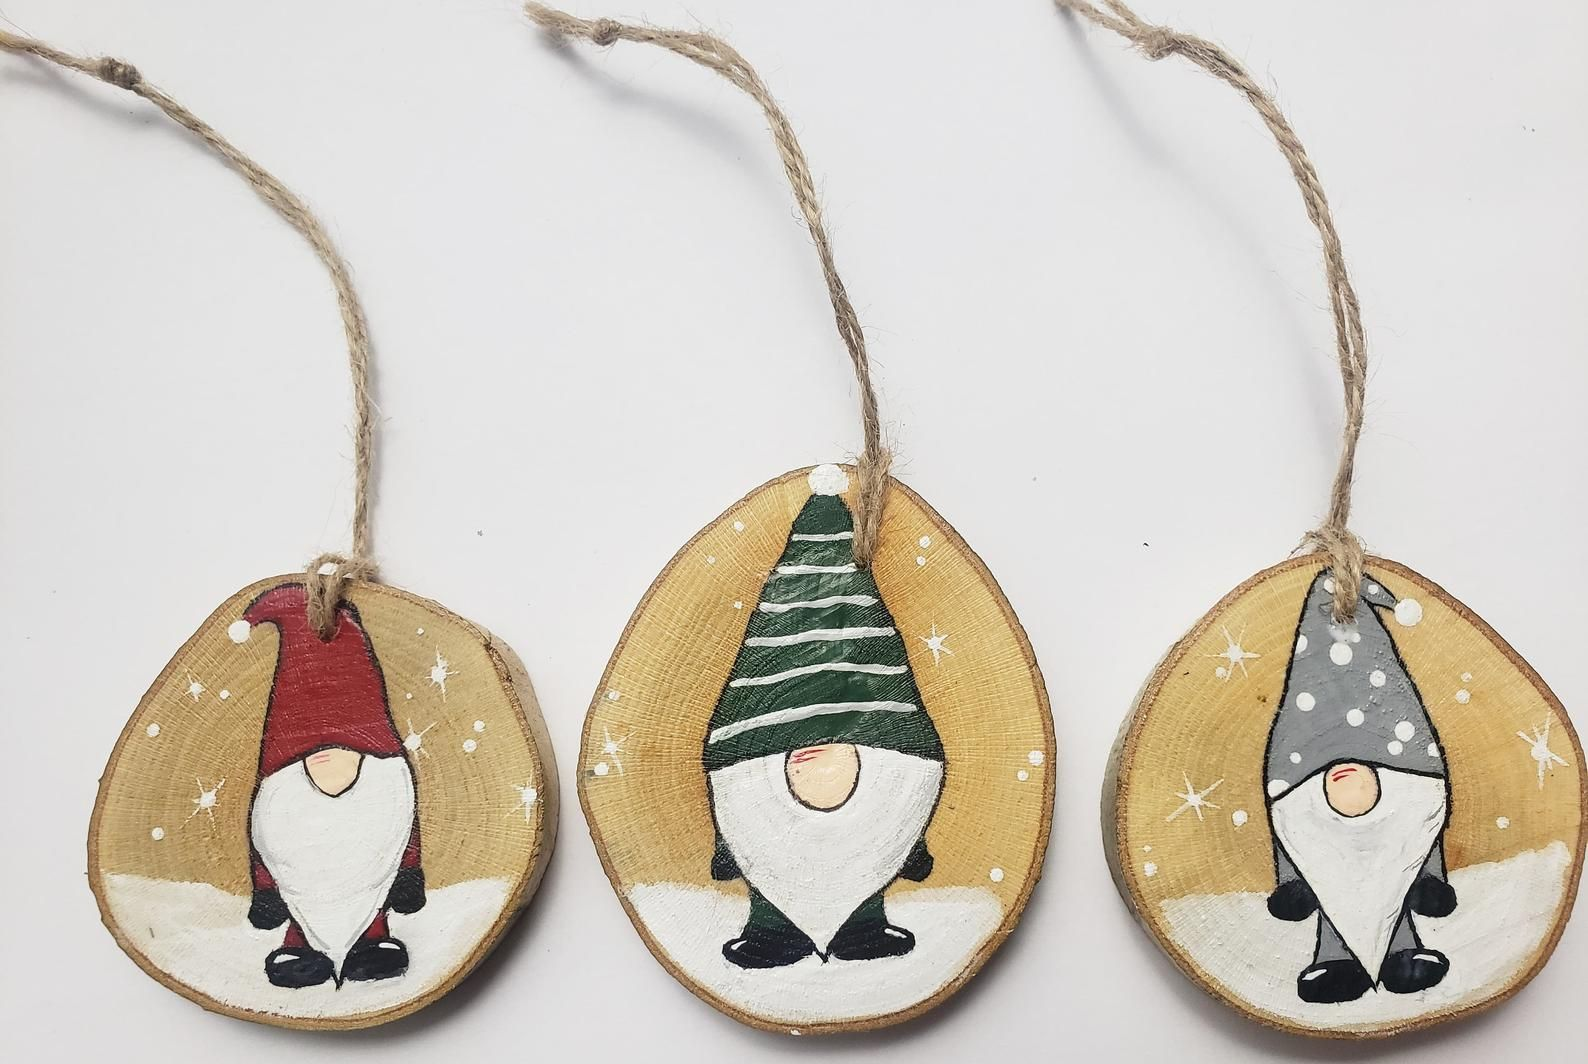 Hand Painted Christmas Gnome Wood Ornaments Wood Slice Etsy Christmas Crafts For Gifts Wood Christmas Ornaments Christmas Decorations Ornaments